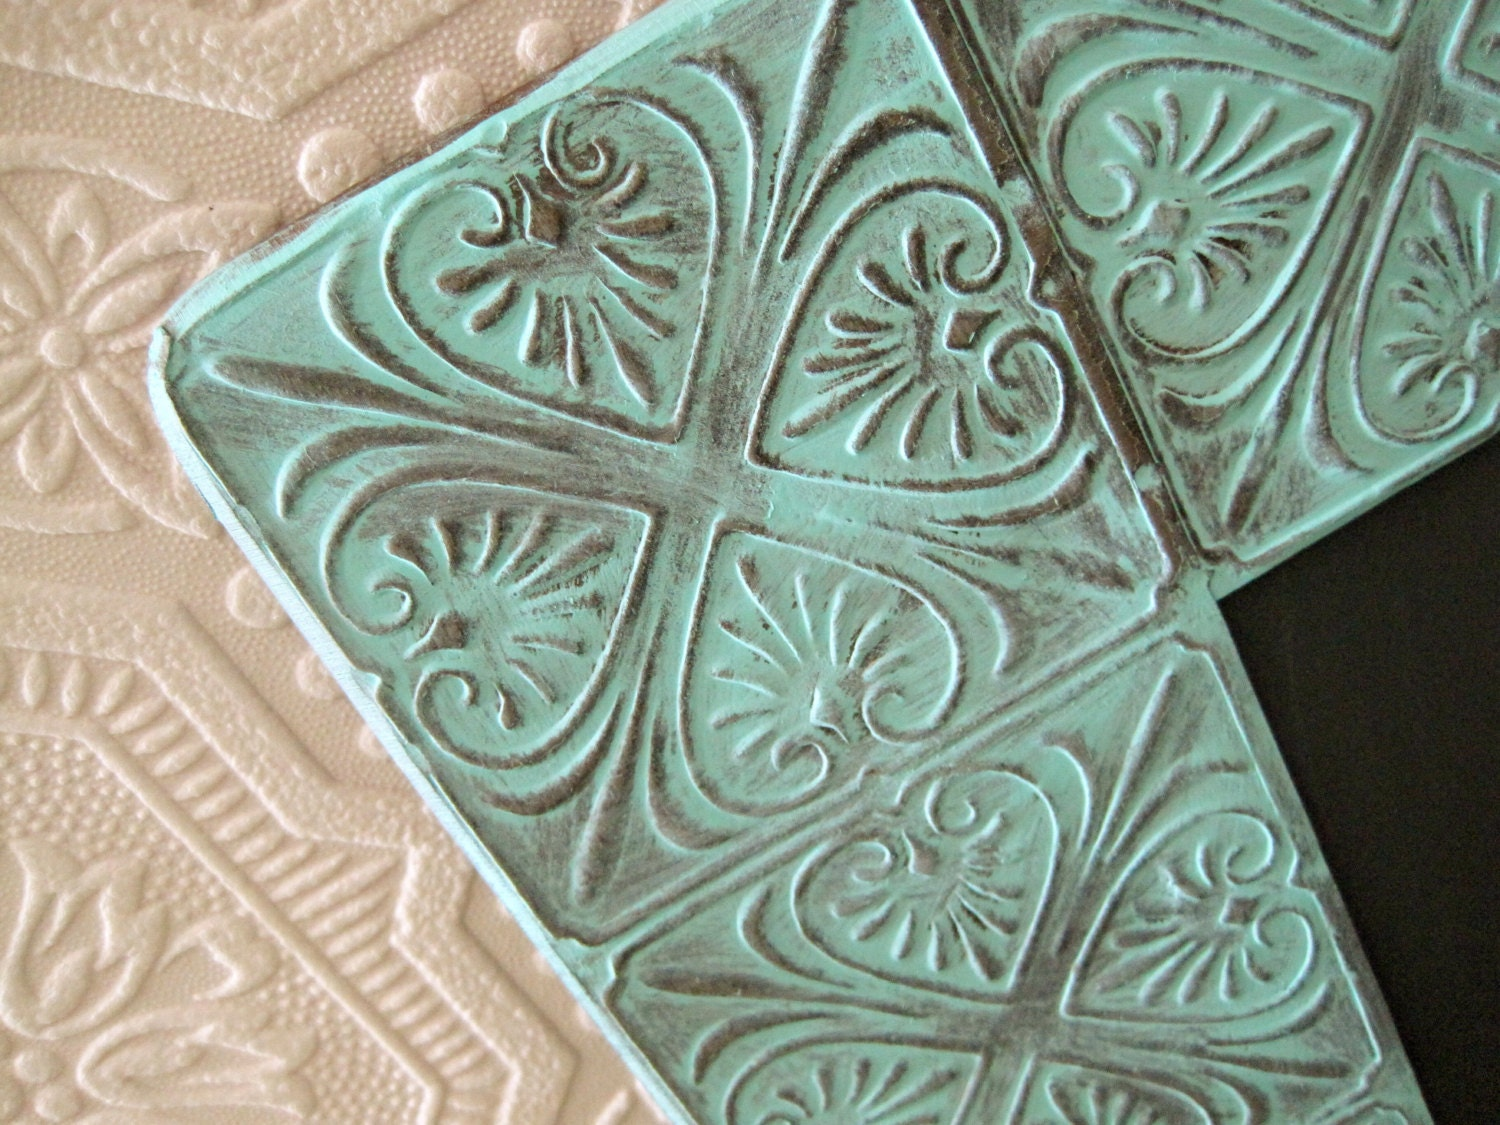 Decorative Bathroom Ceiling Tiles : Tin ceiling tile mirror decorative wall ornate bathroom